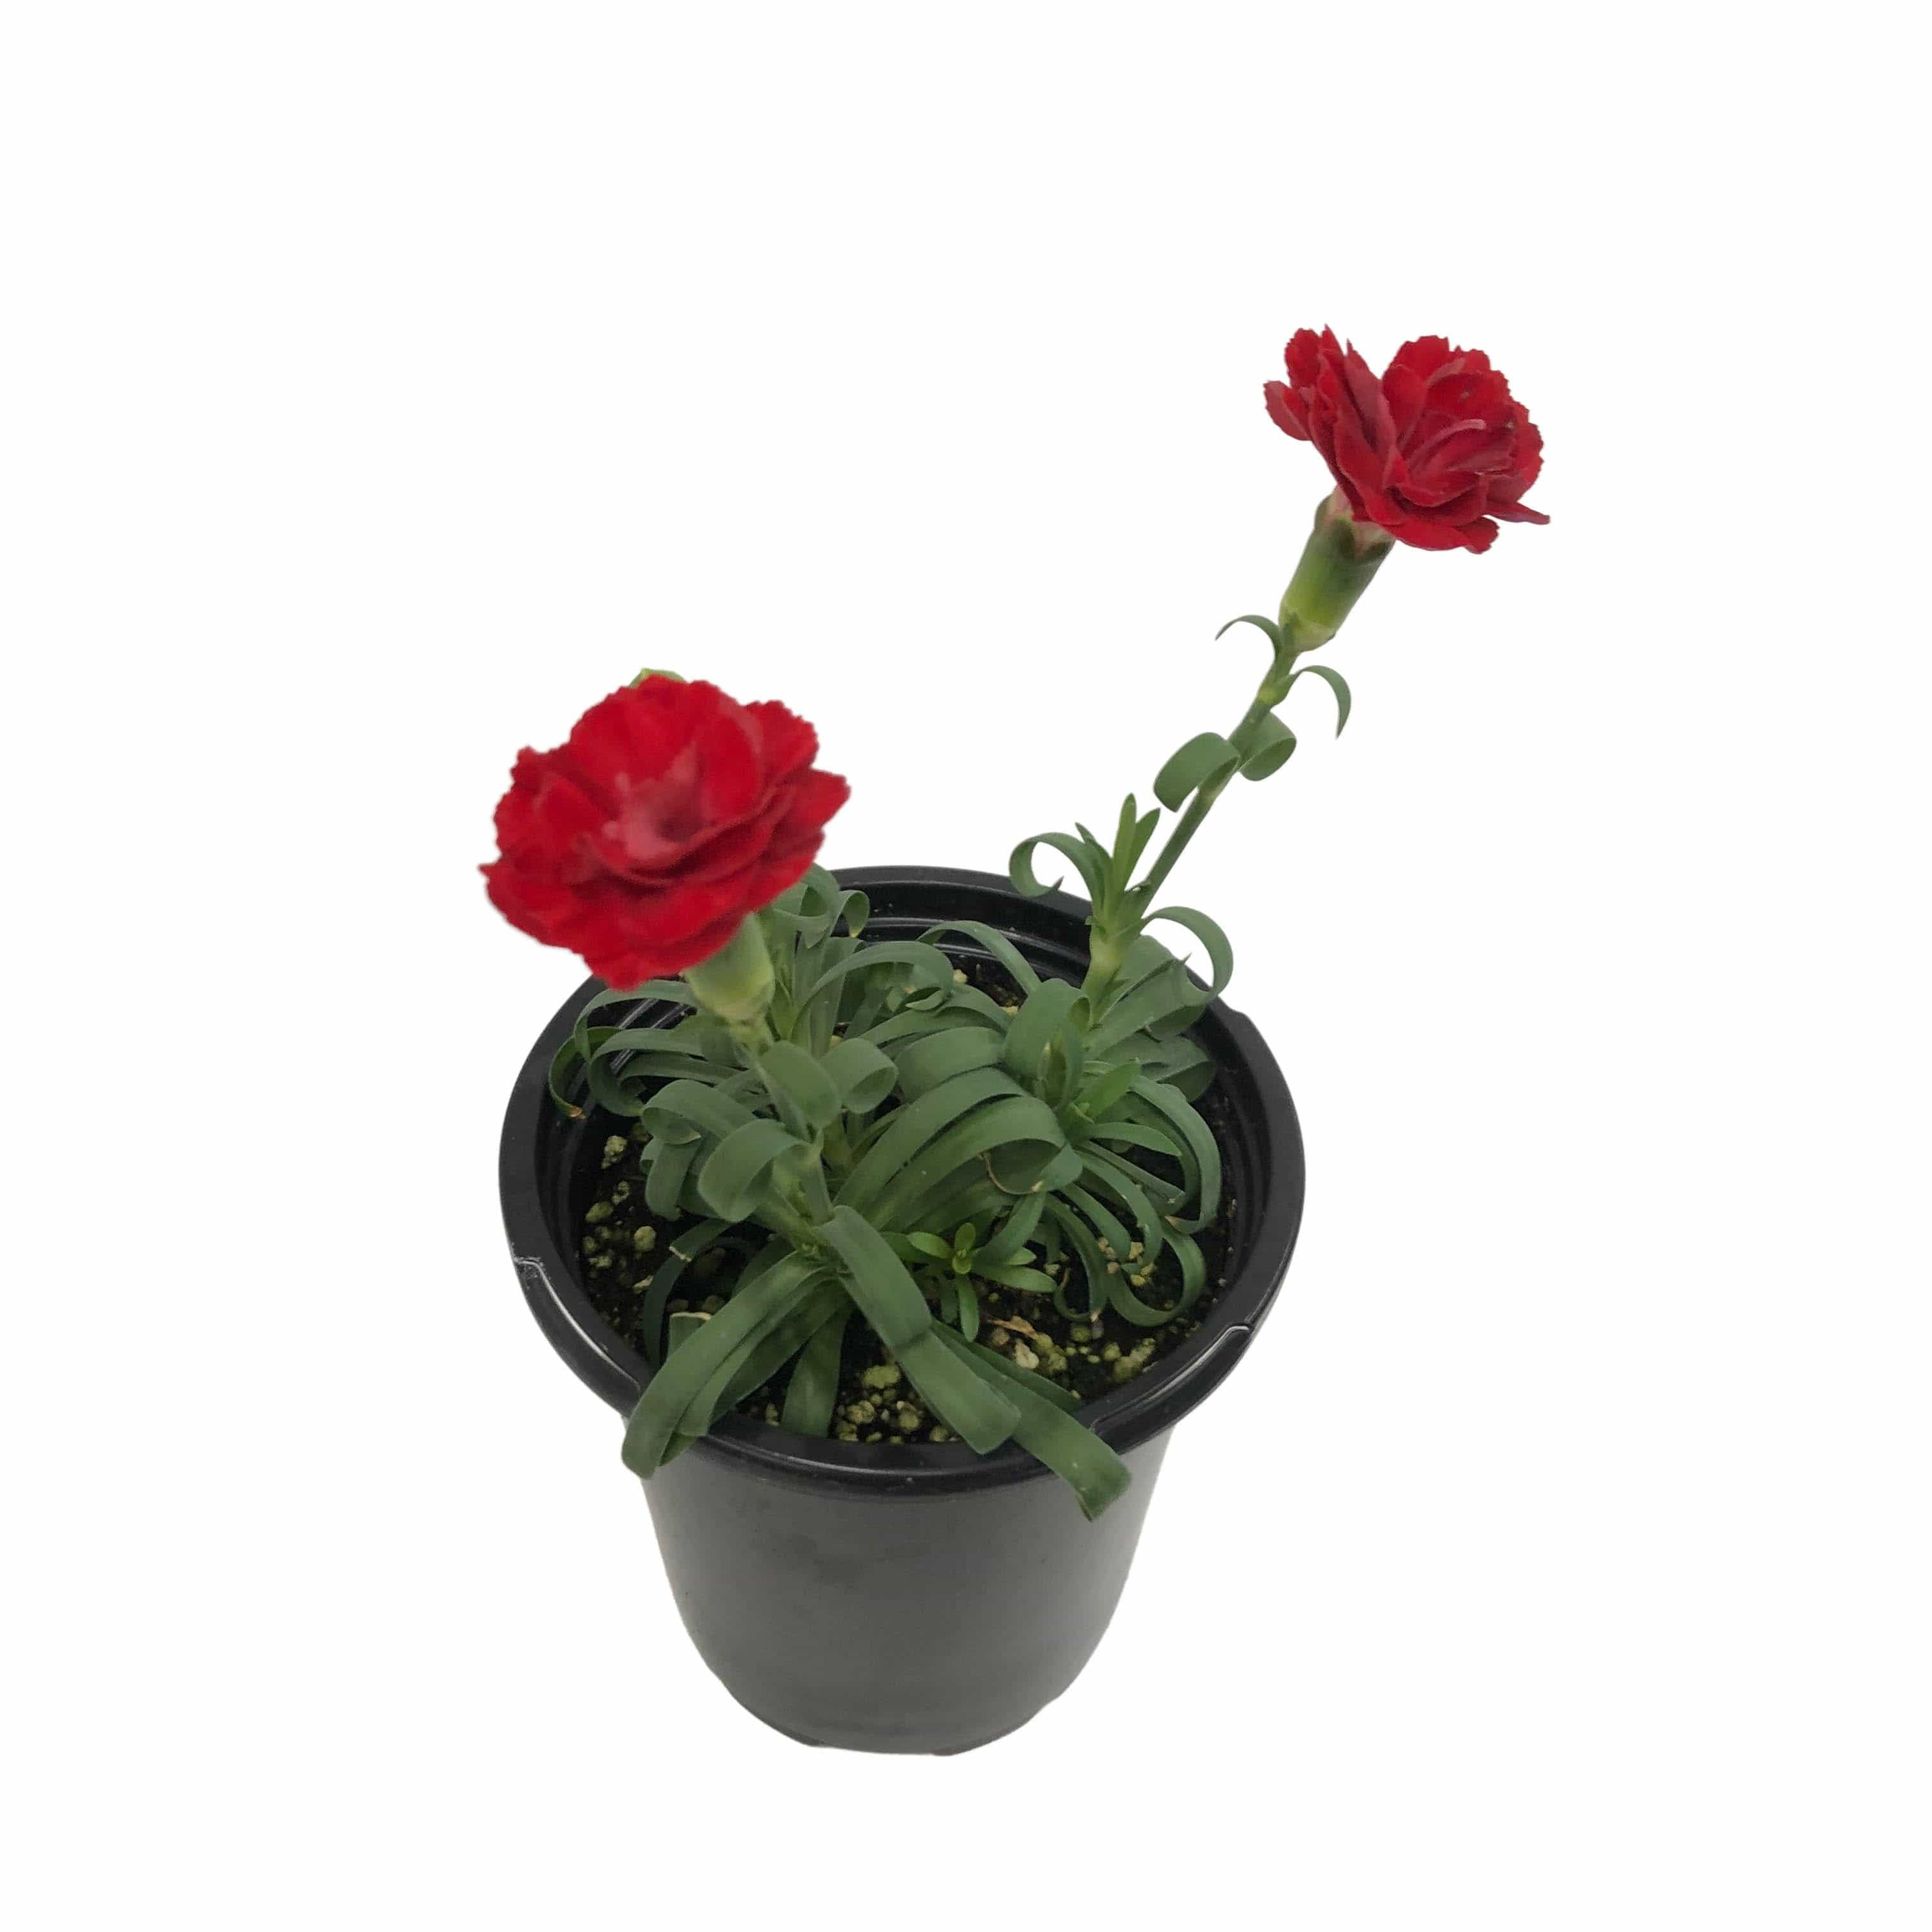 "The Plant Farm Bedding Plants Carnation SuperTrouper Scarlet, 4.5"" Plant"